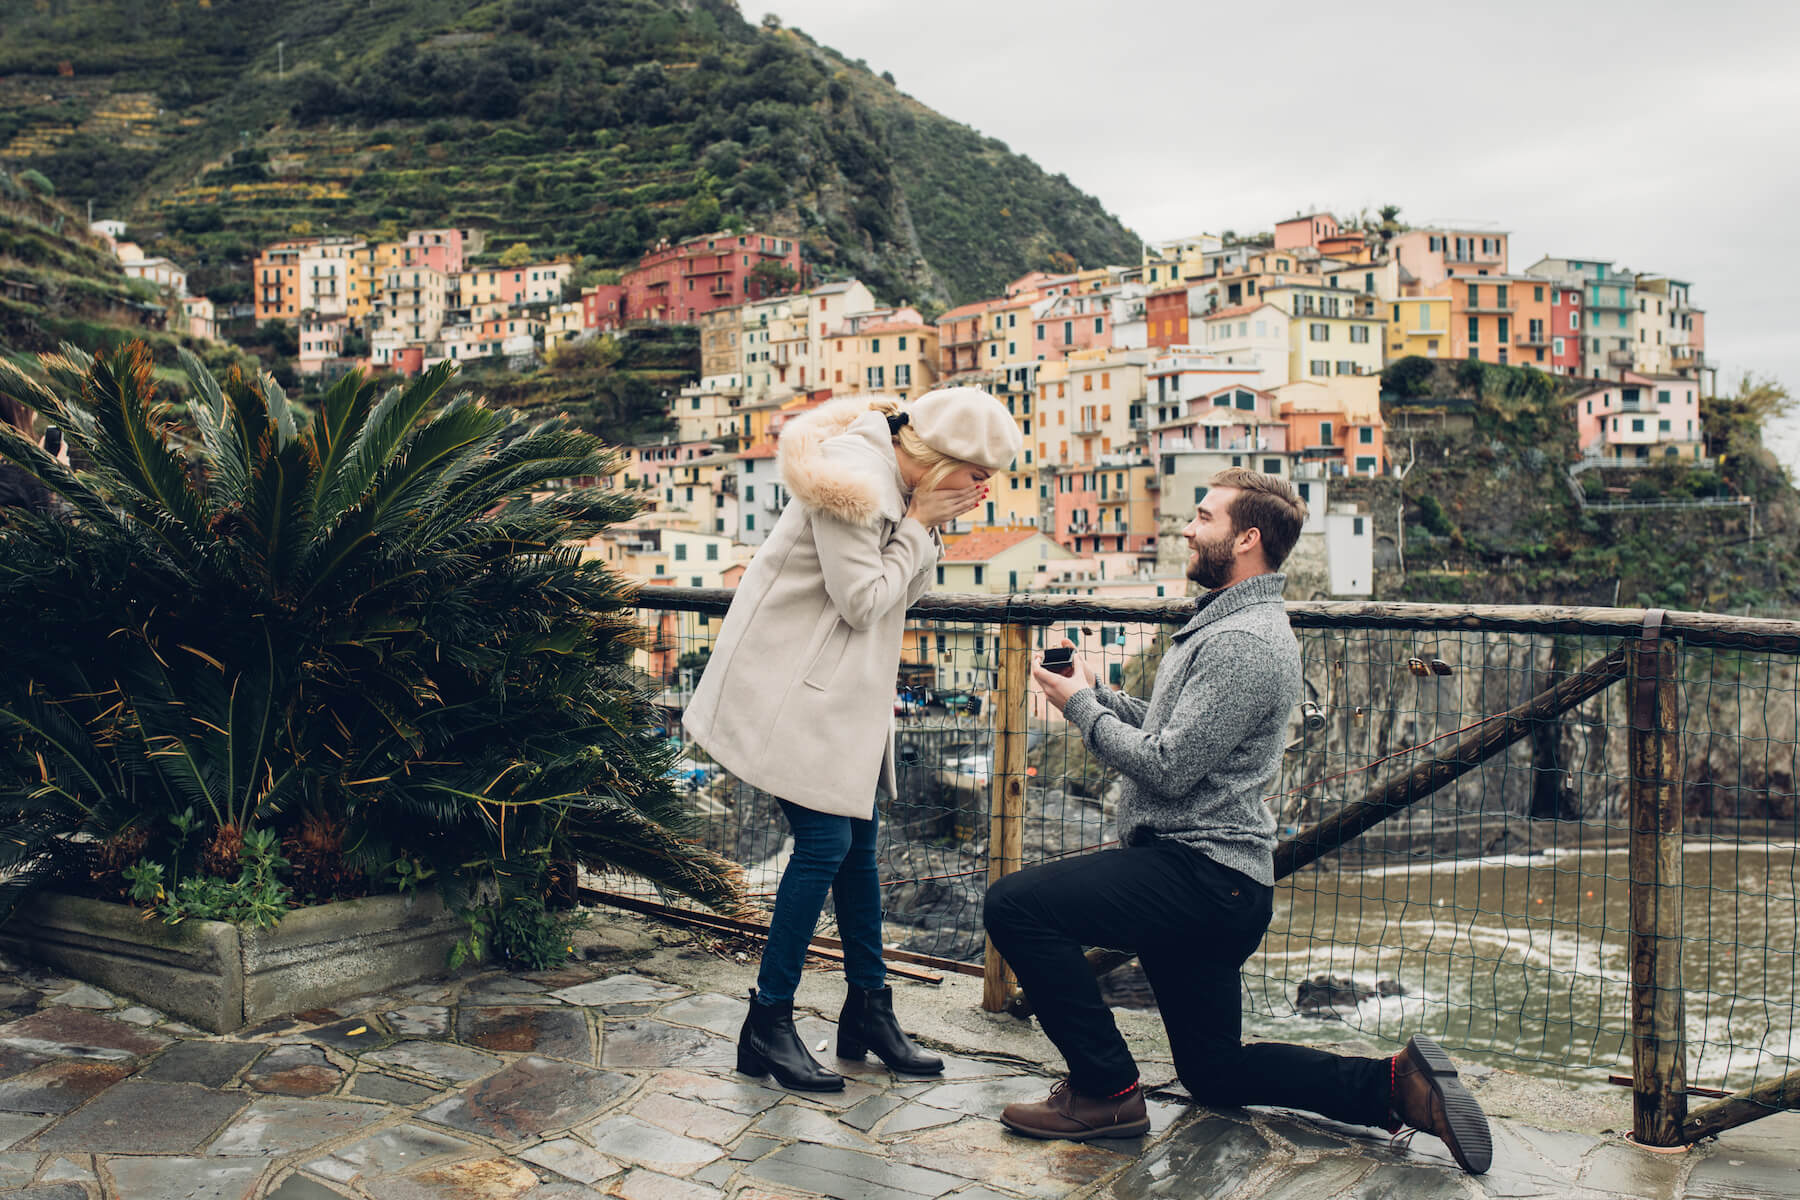 A man is proposing to a woman on a lookout point in Cinque Terre. Both are wearing weather appropriate outfits. The woman is wearing a white coat.